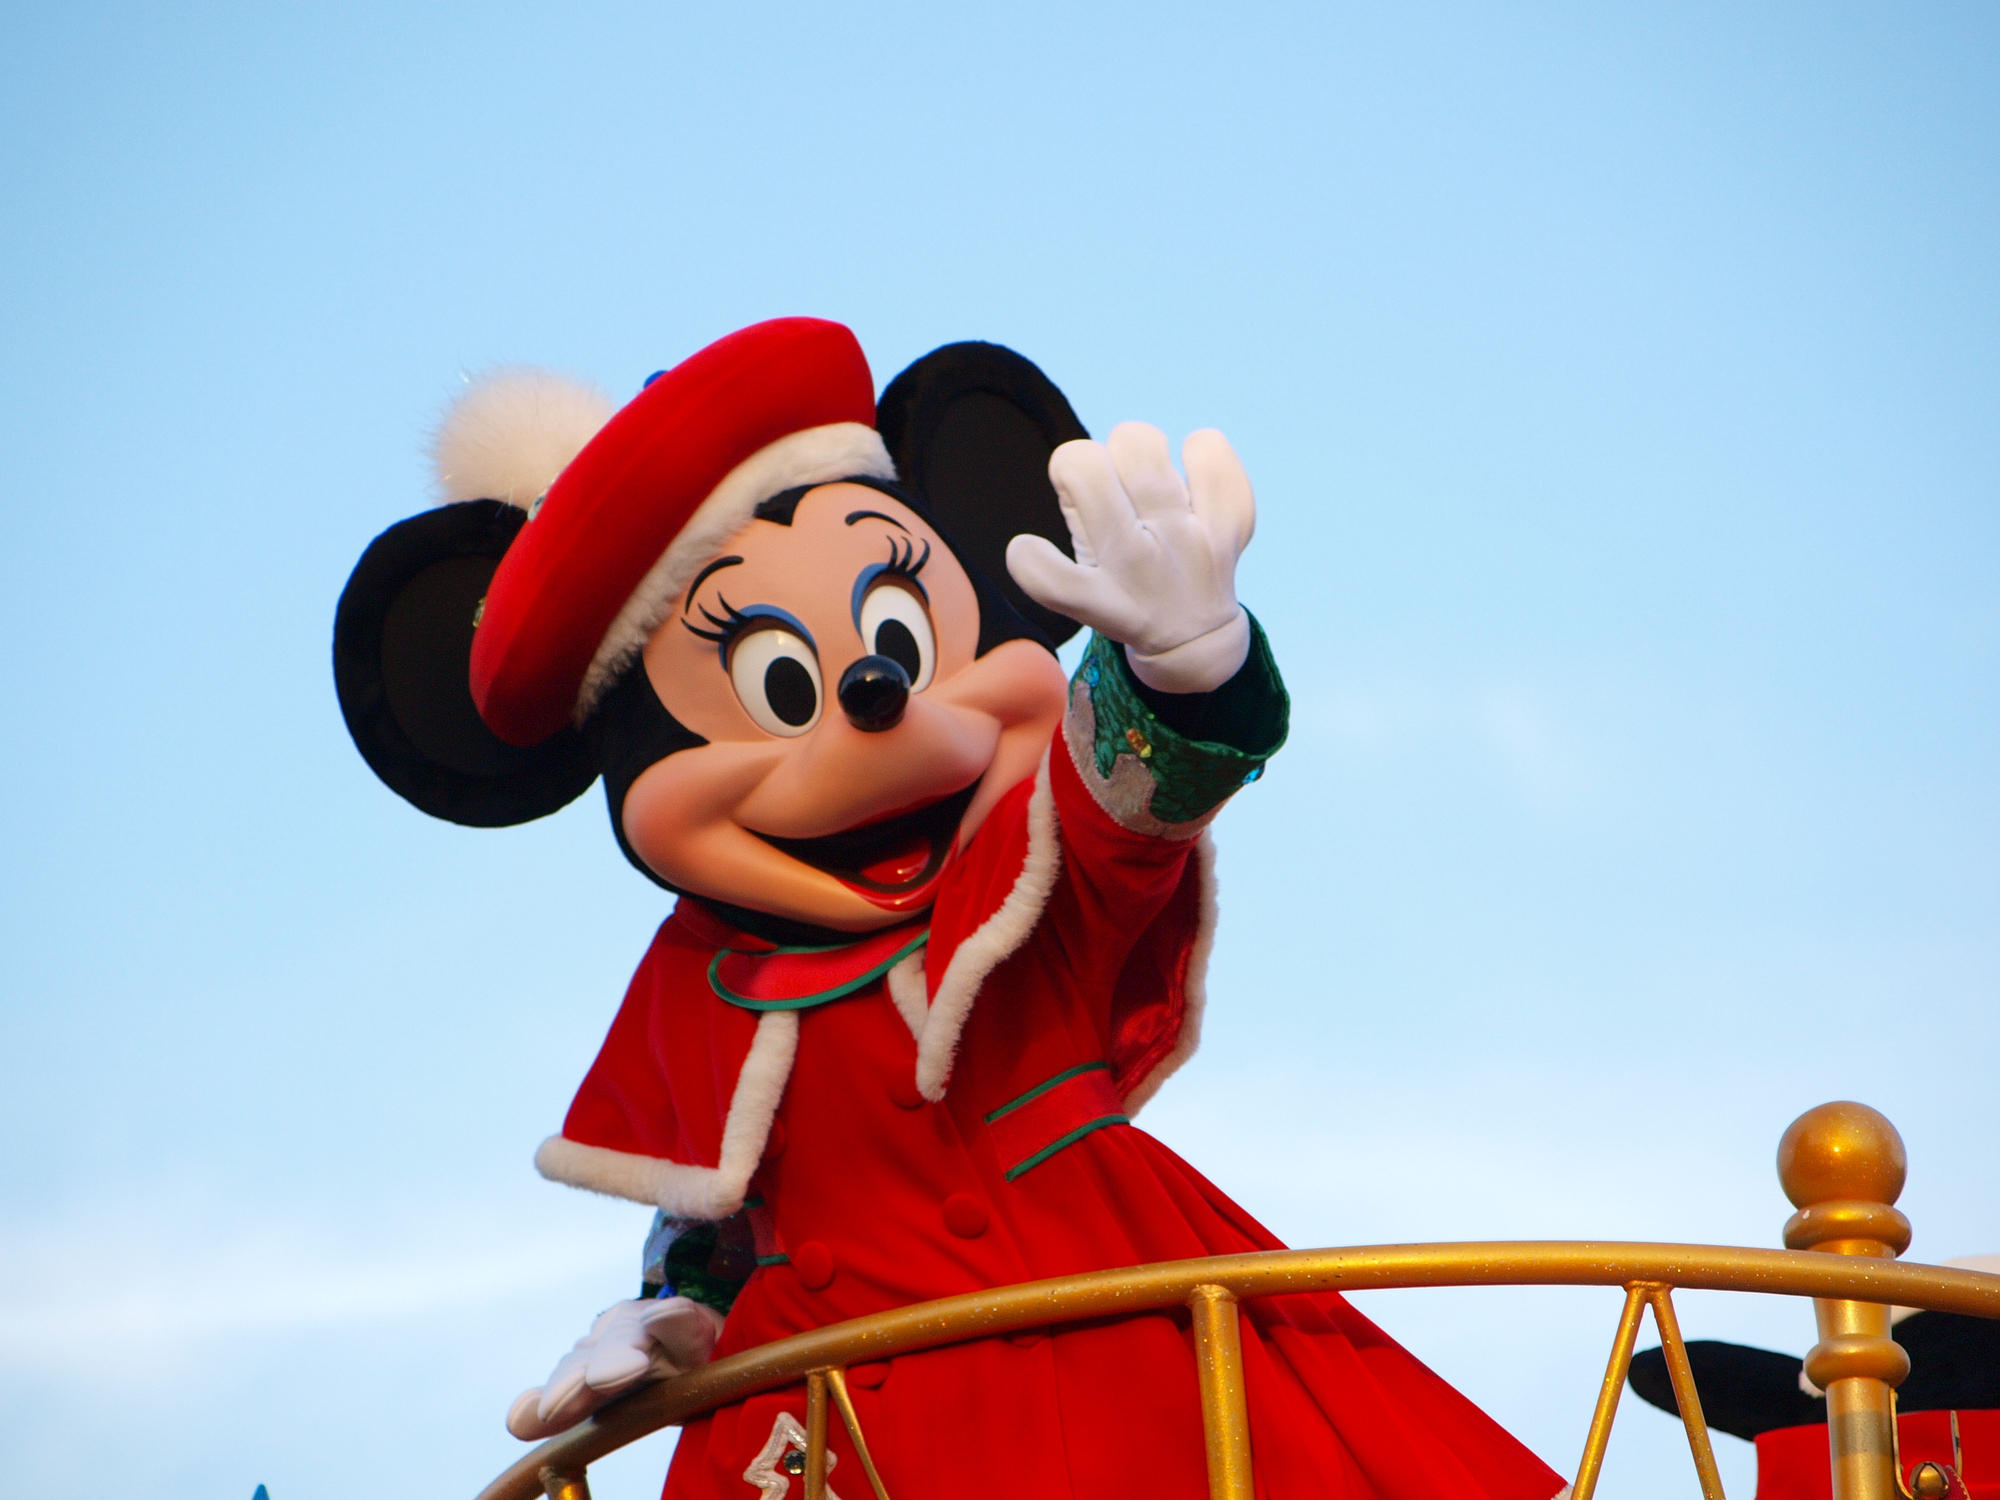 Tokyo, Japan - December 14, 2012: Minnie Mouse in the red coat waving her hand in daytime Parade at Tokyo-Disneyland, Tokyo, Japan.